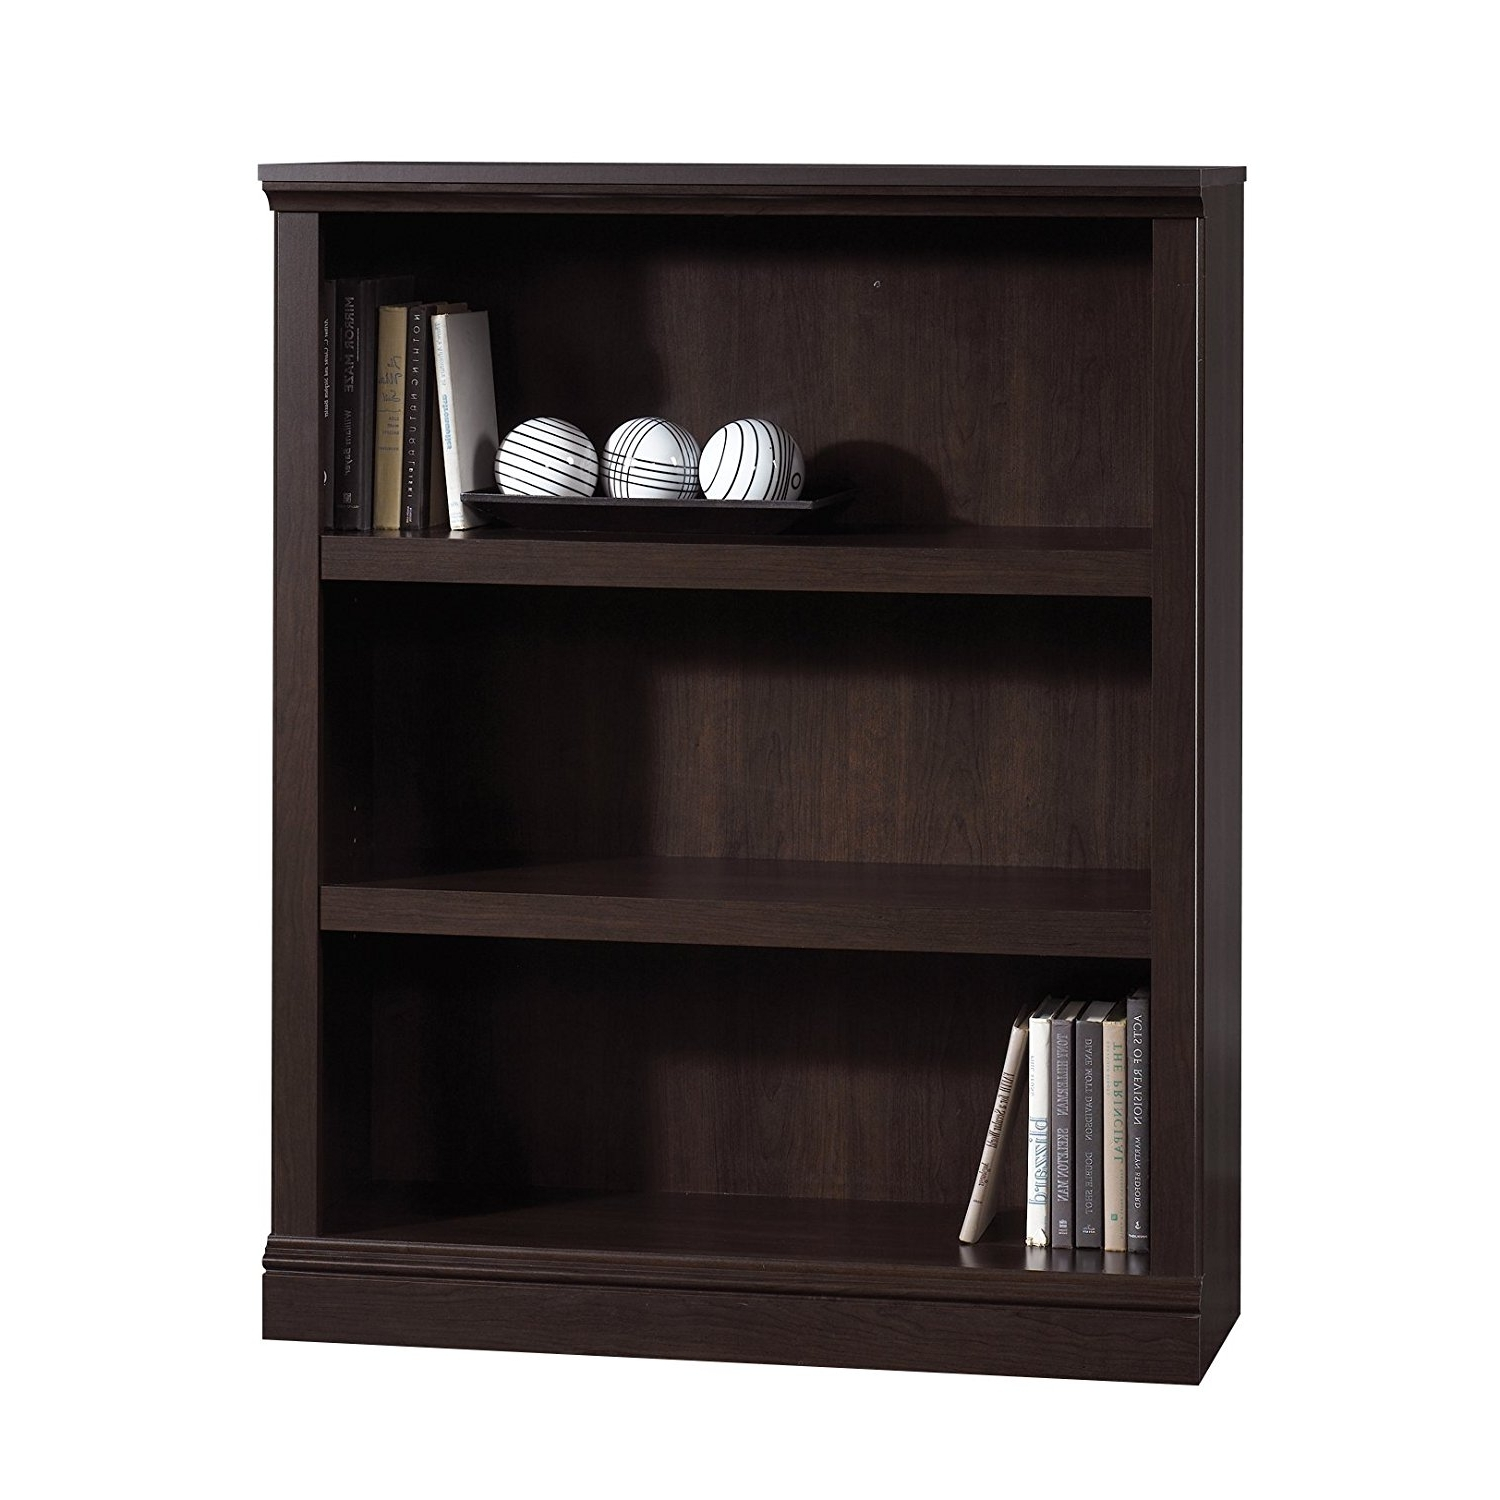 Most Recent Room Essentials 3 Shelf Bookcases With Regard To Room Essentials Shelf Bookcase Instructions3 Wood In Black Wooden (View 6 of 15)